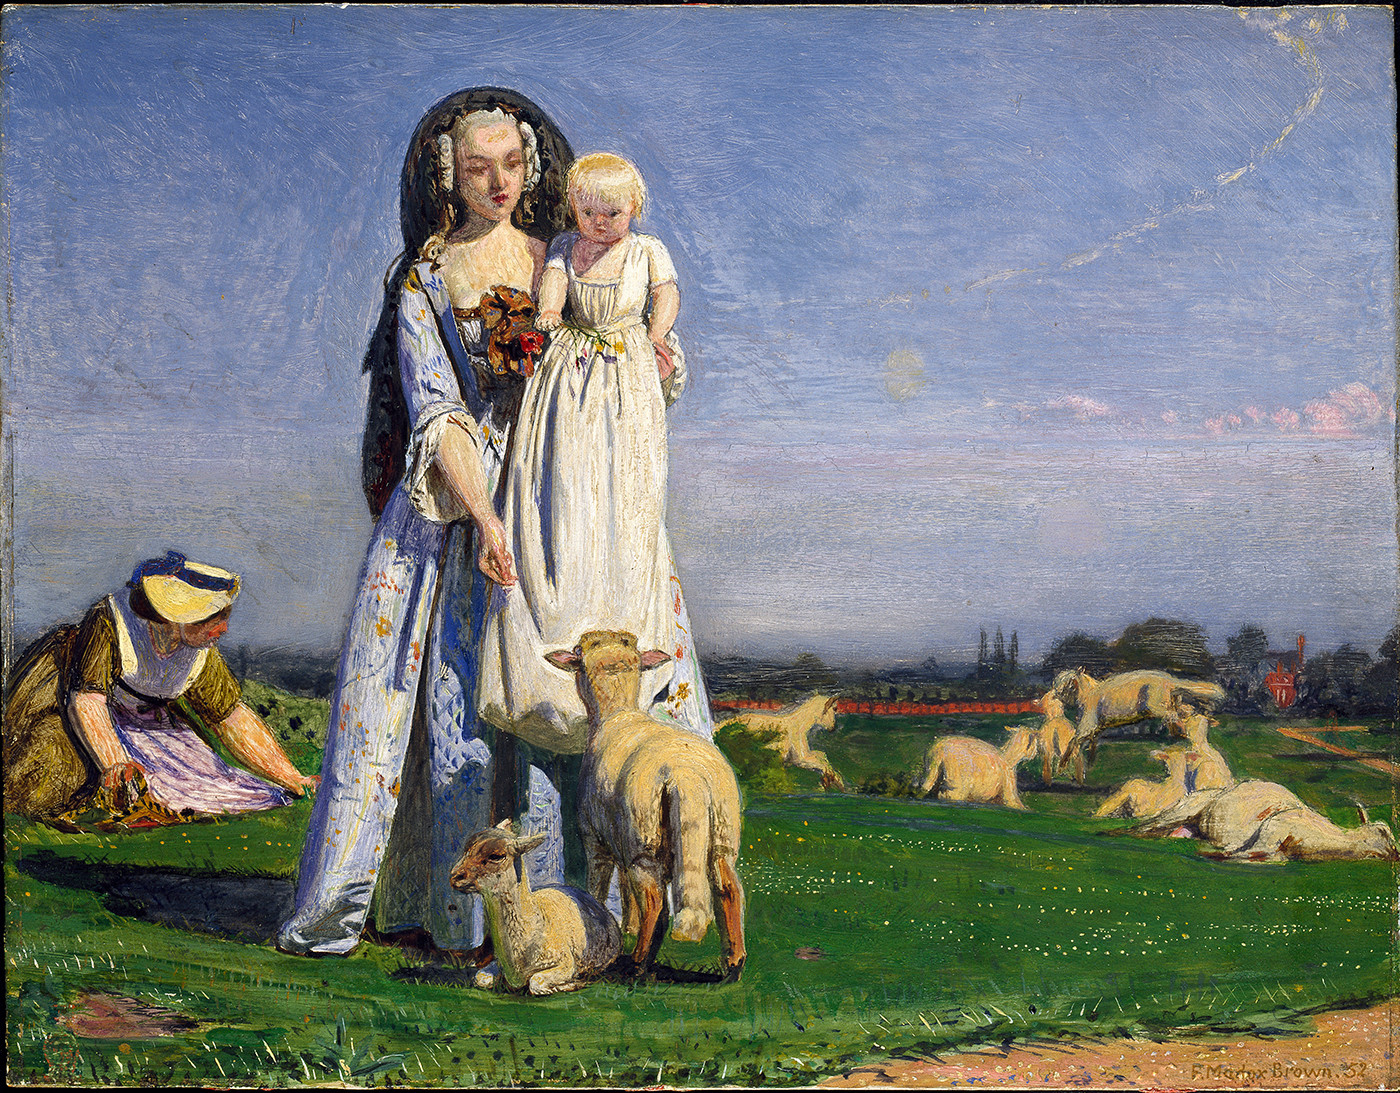 Ford Madox Brown, The Pretty Baa-Lambs, 1852, Oil on panel, The Ashmolean Museum, University of Oxford